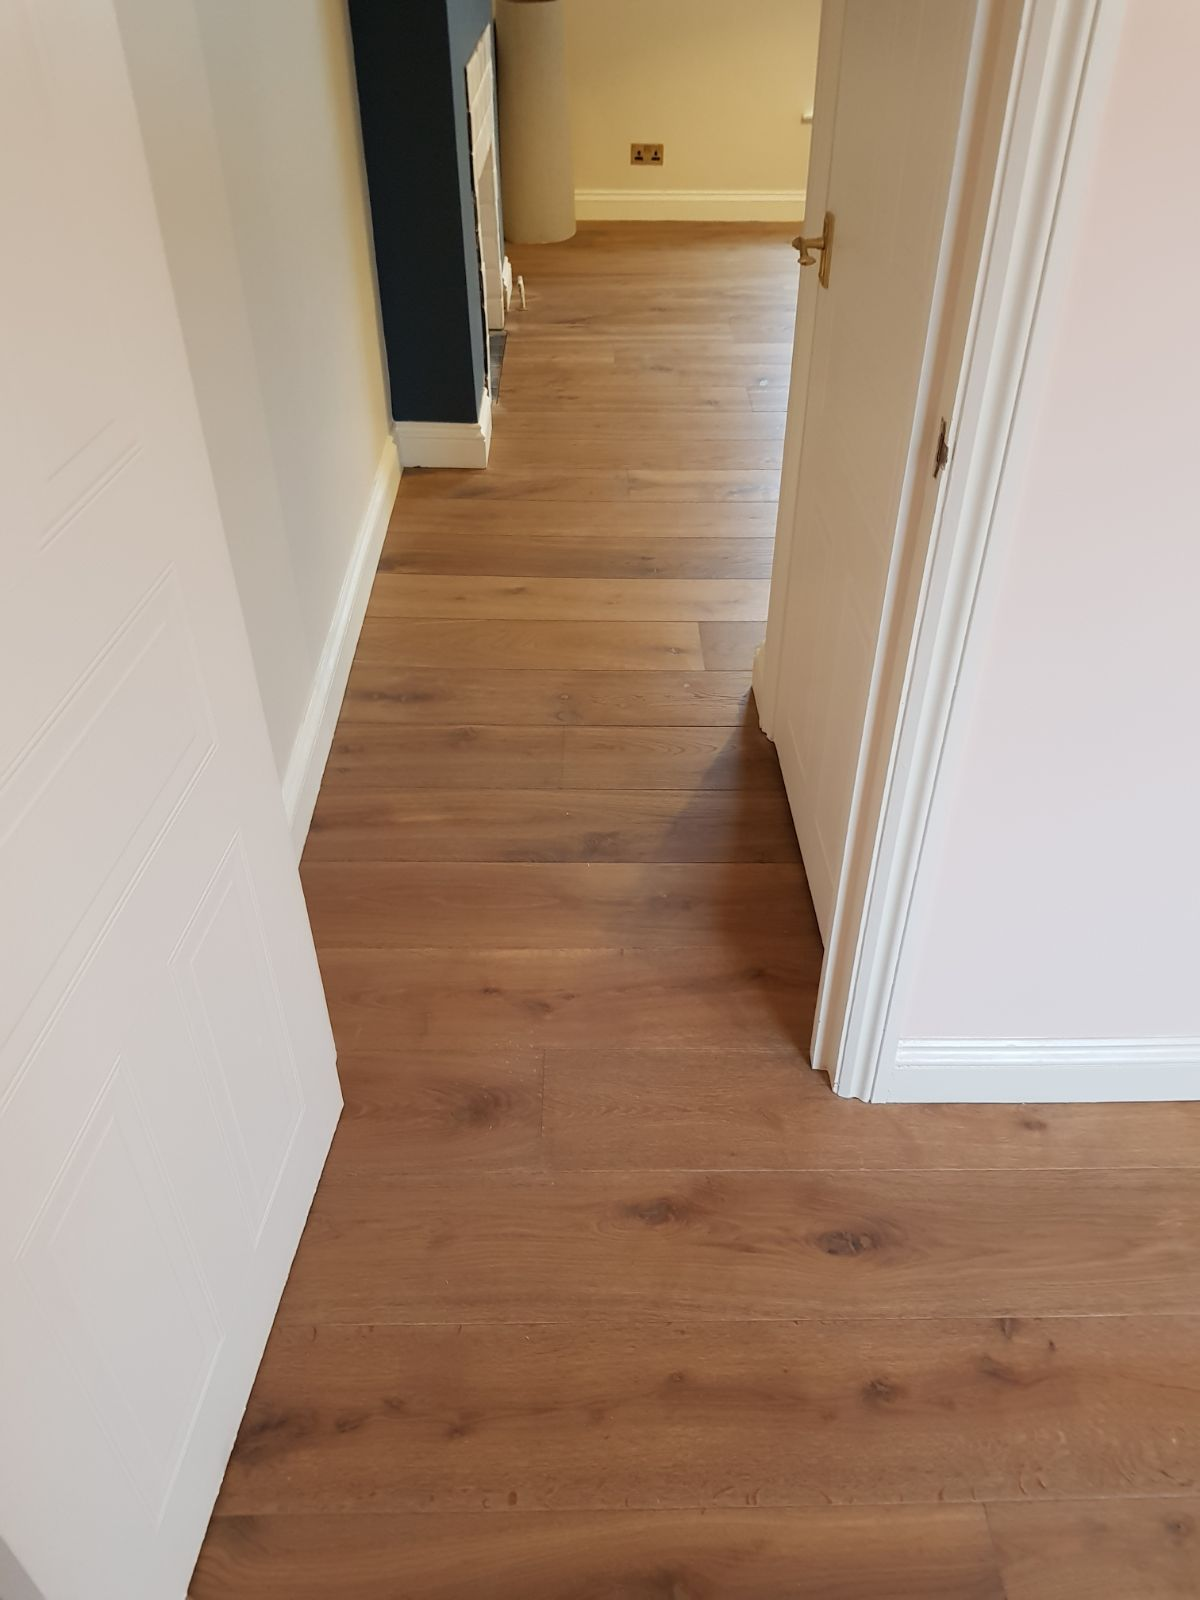 Staki Oak Tobacco Wood Flooring in Clapham 3